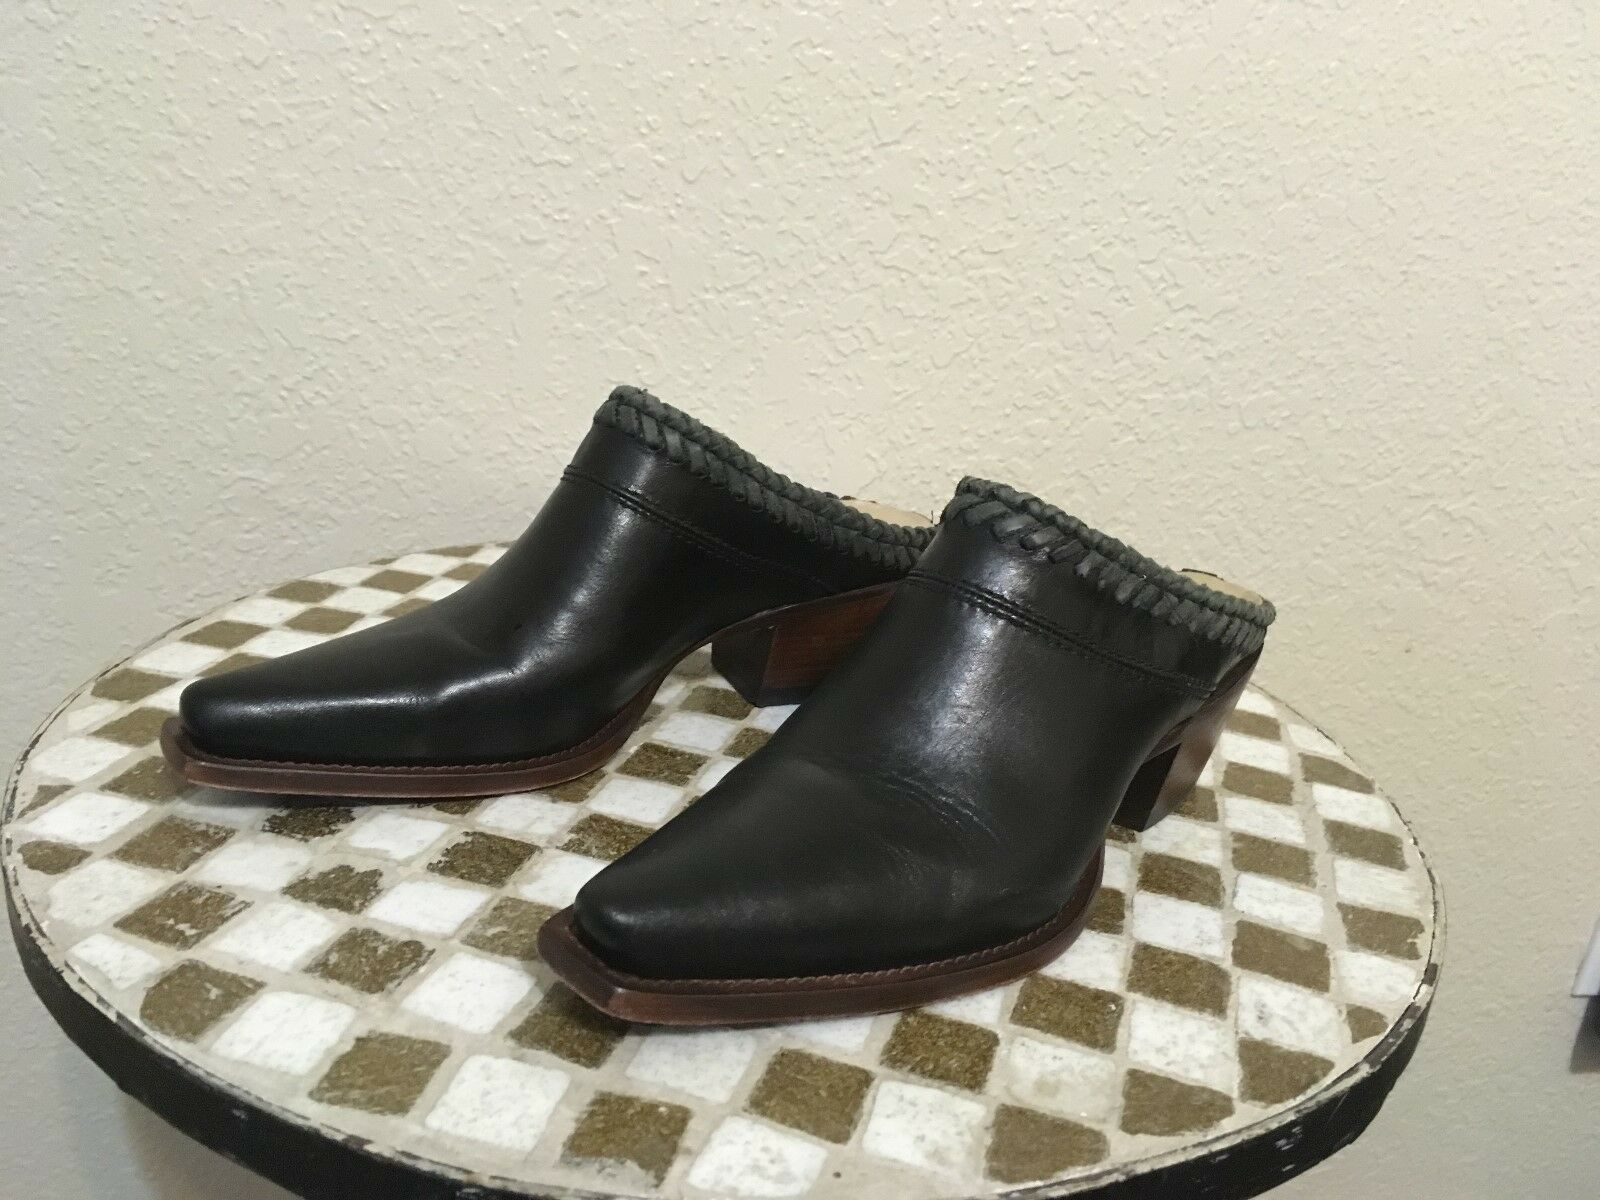 HANDMADE IN BRAZIL noir SLIP ON LUCCHESE POINTY chaussures MULES 7 B